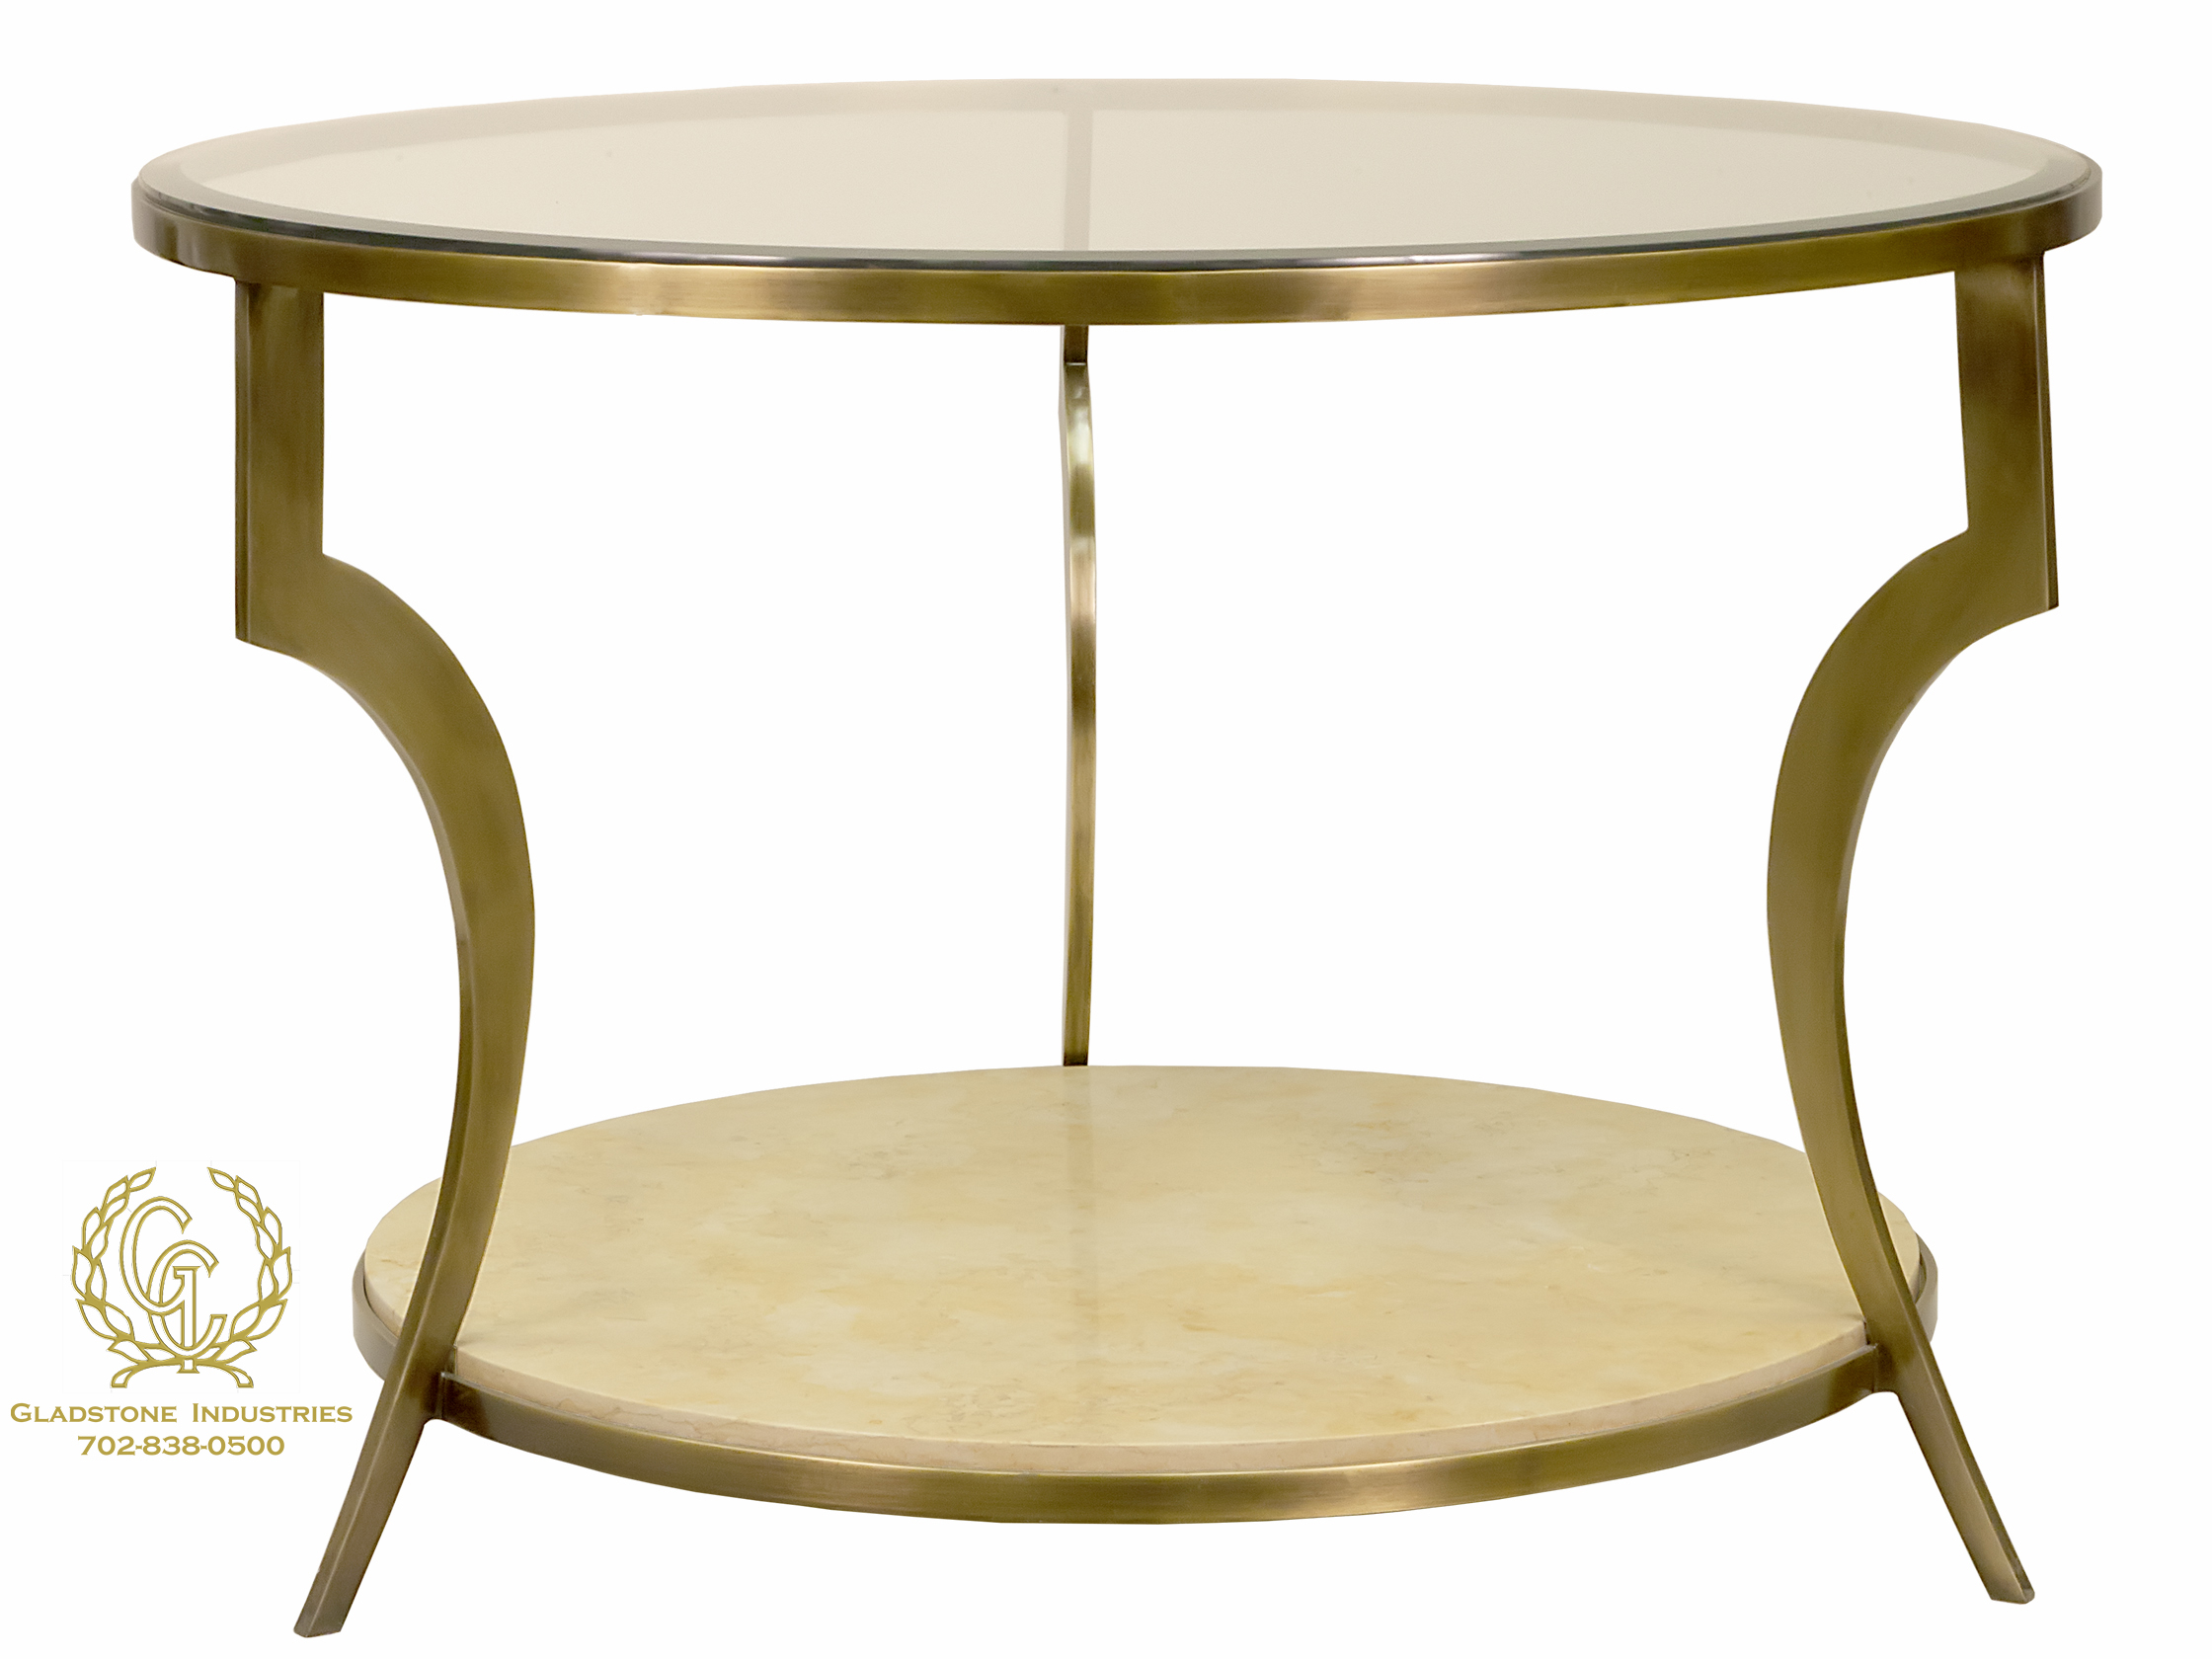 Custom Brass and Marble Table